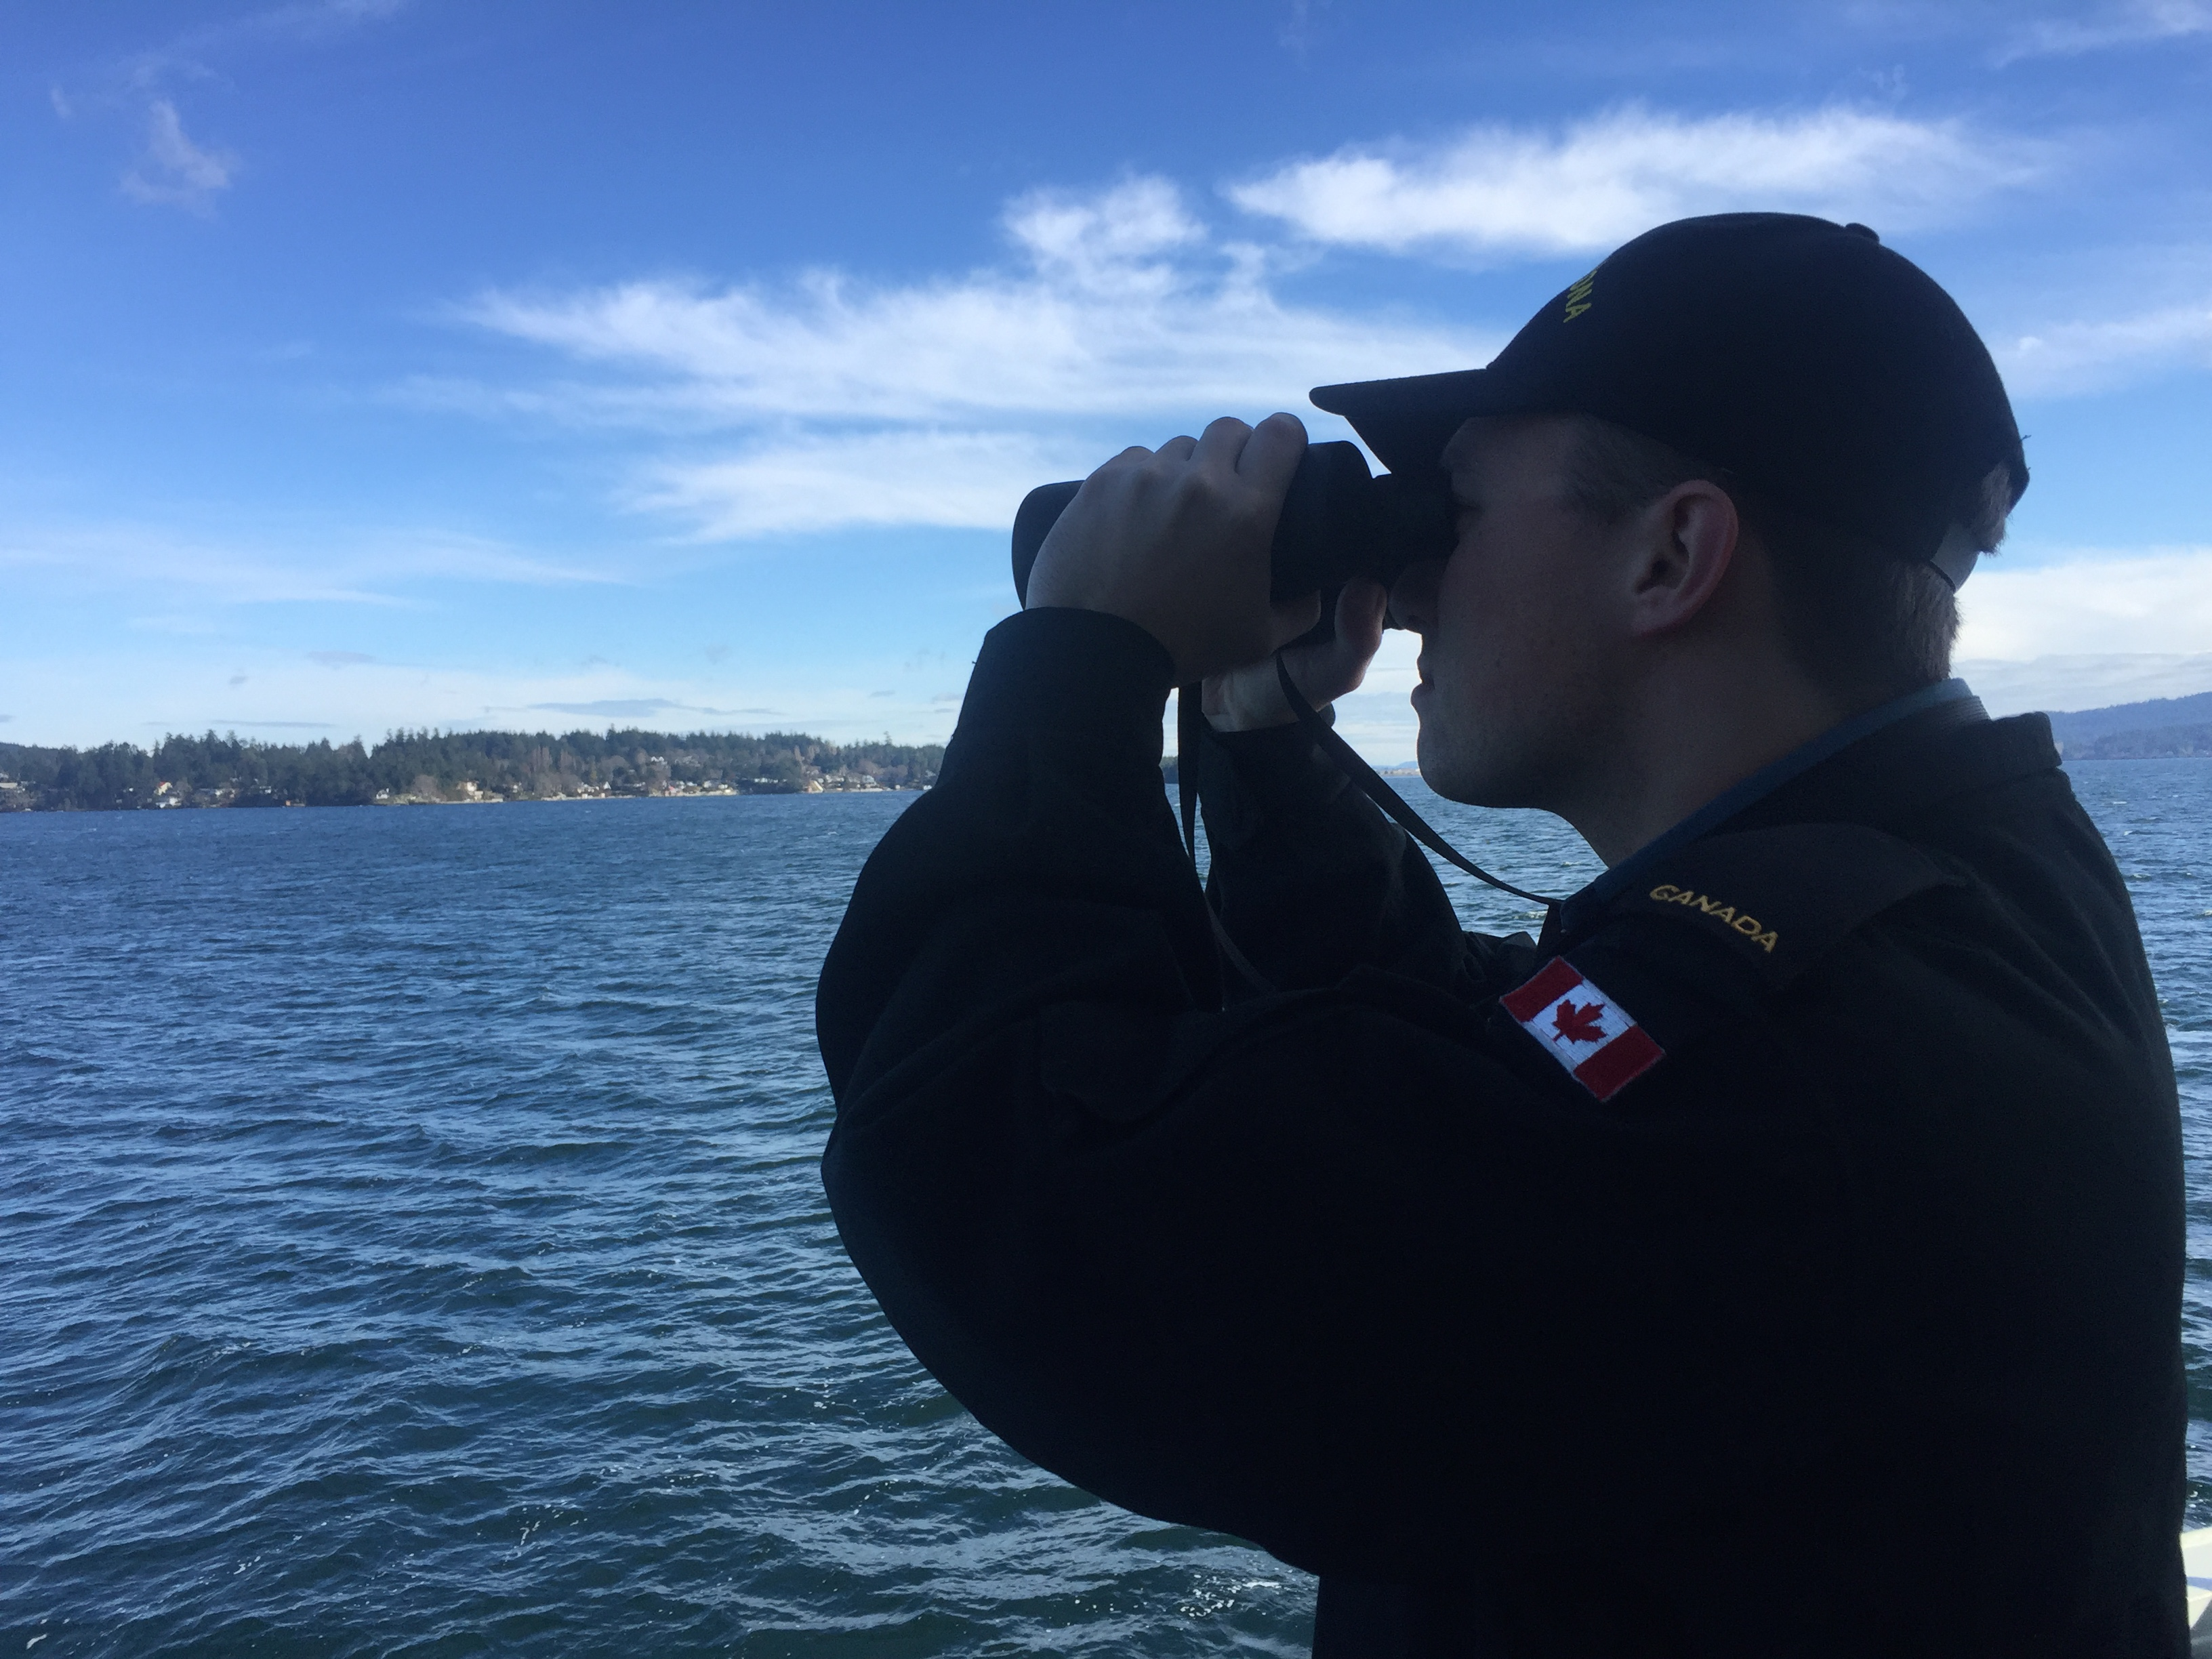 Ordinary Seaman Michael Colangelo-Lauzon is on lookout aboard Orca-class vessel Wolf 59 during a training sail through the Gulf Islands of British Columbia.